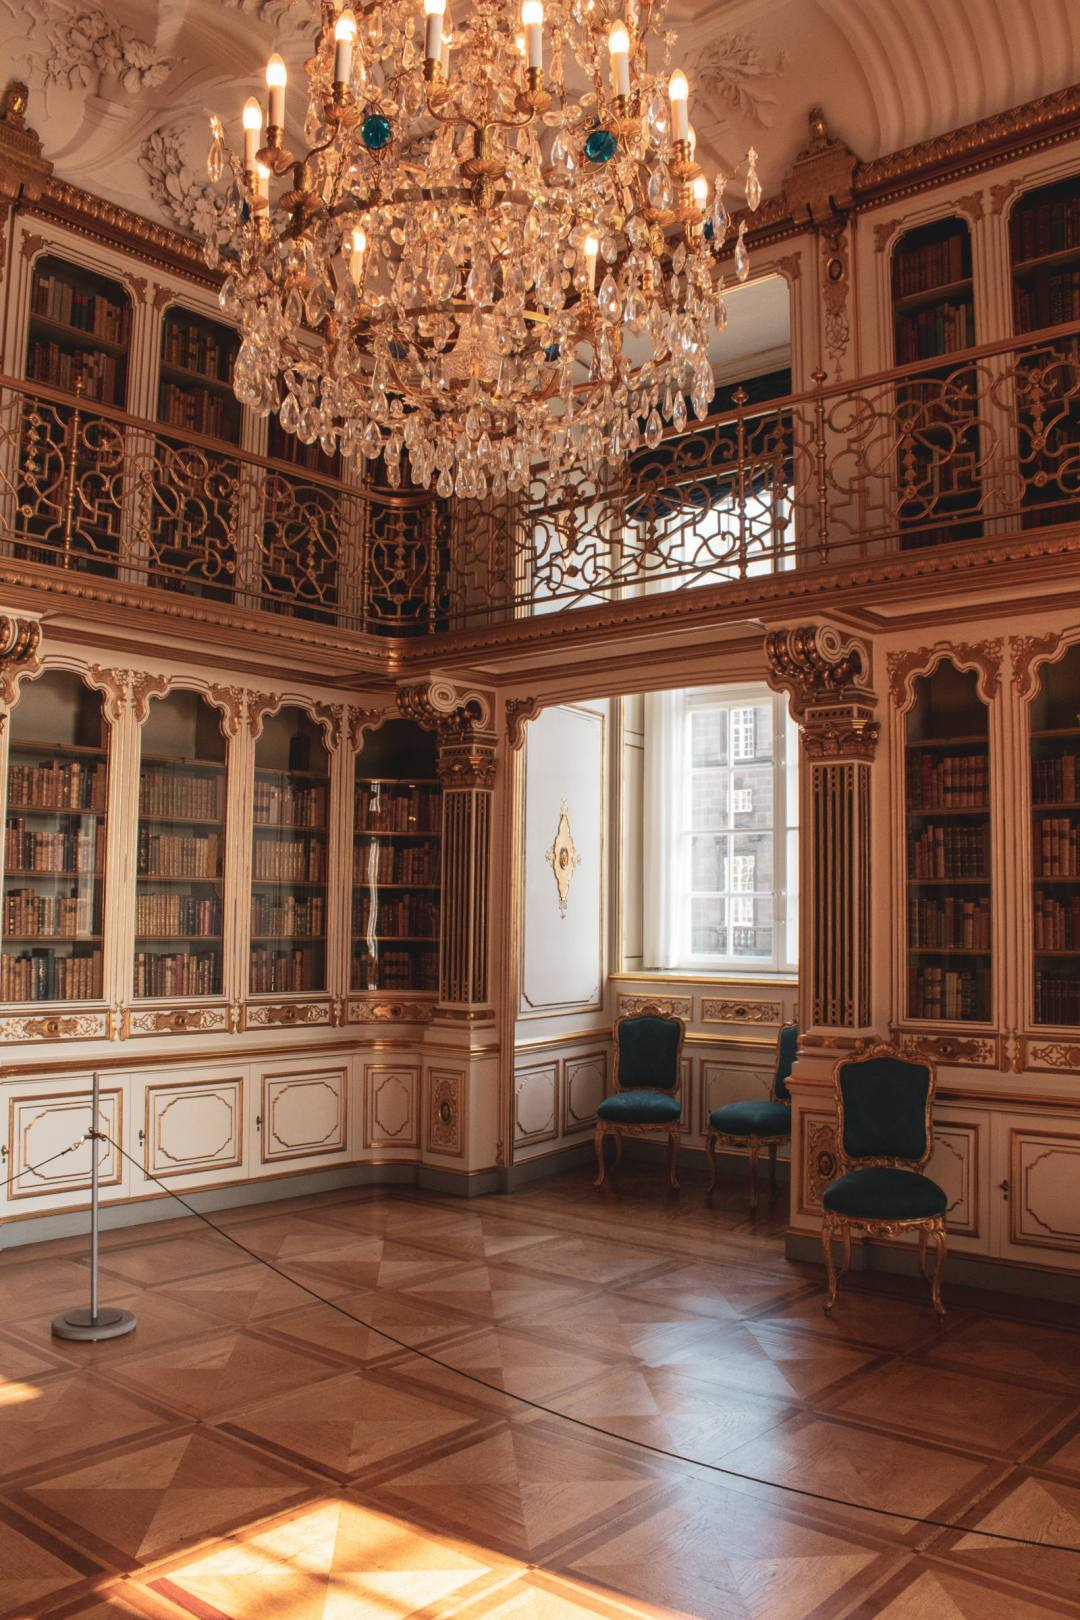 Library inside royal rooms of Copenhagen Palace